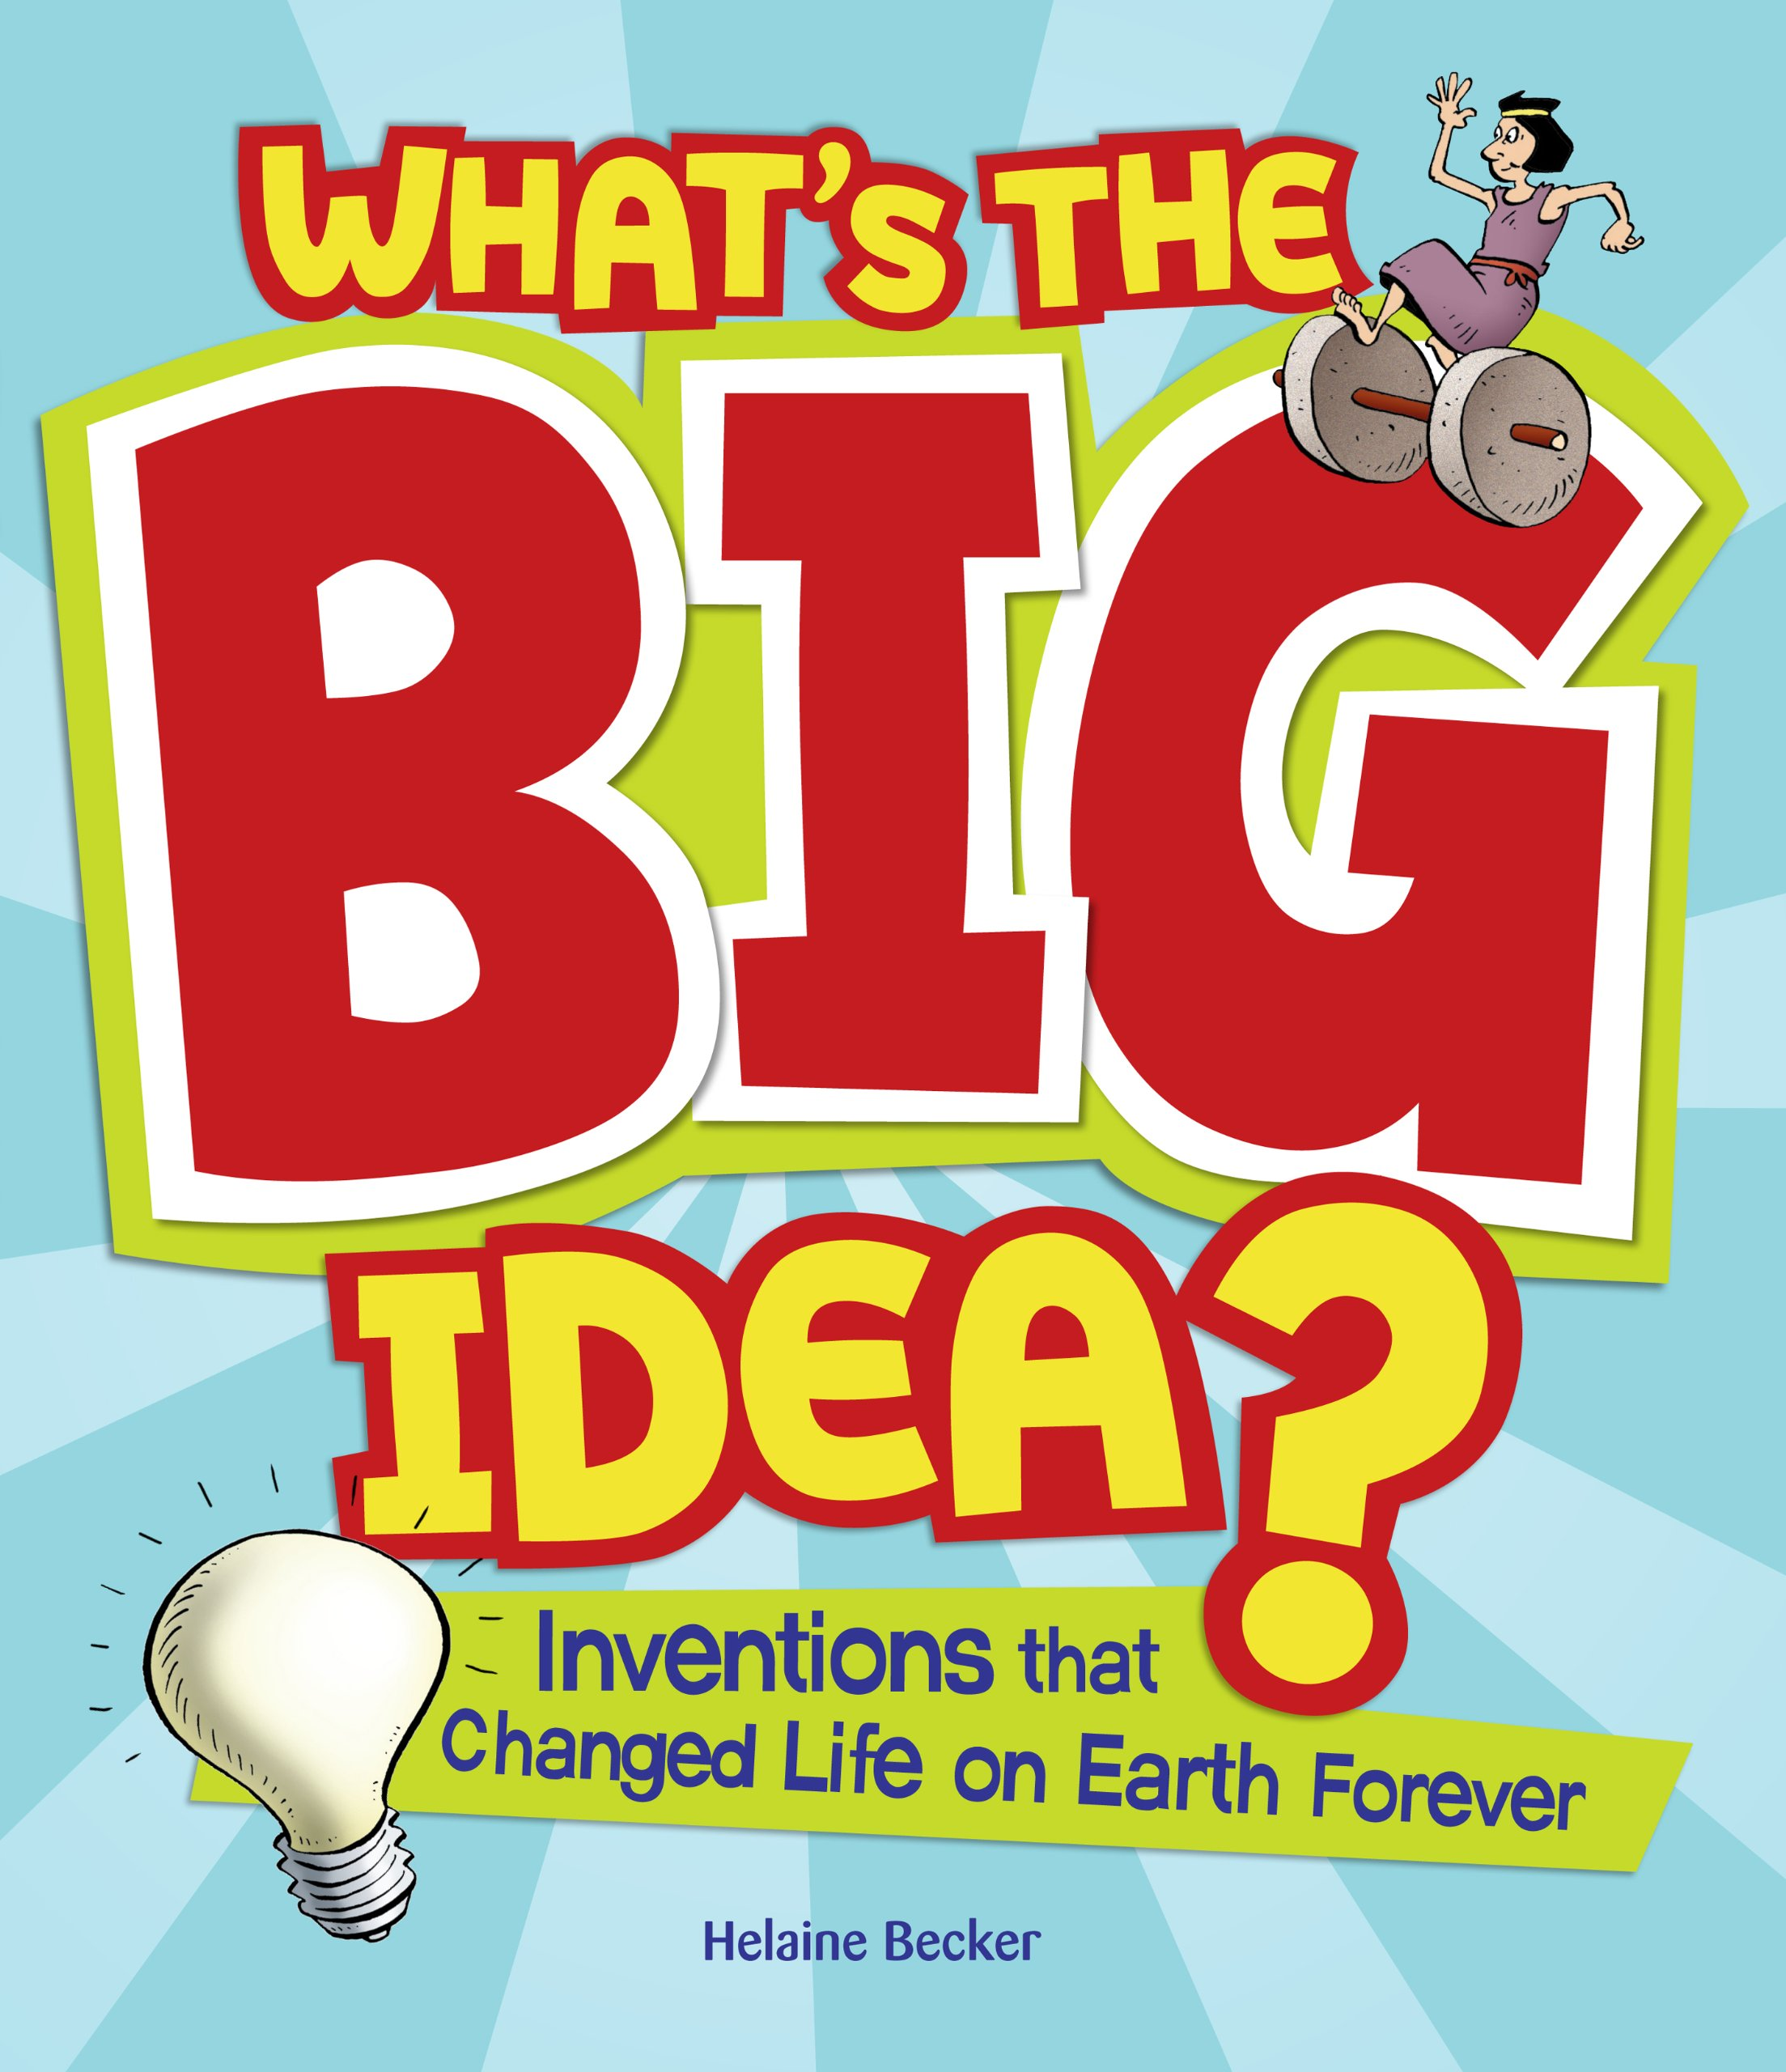 What's the Big Idea?: Inventions that Changed Life on Earth Forever ePub fb2 book